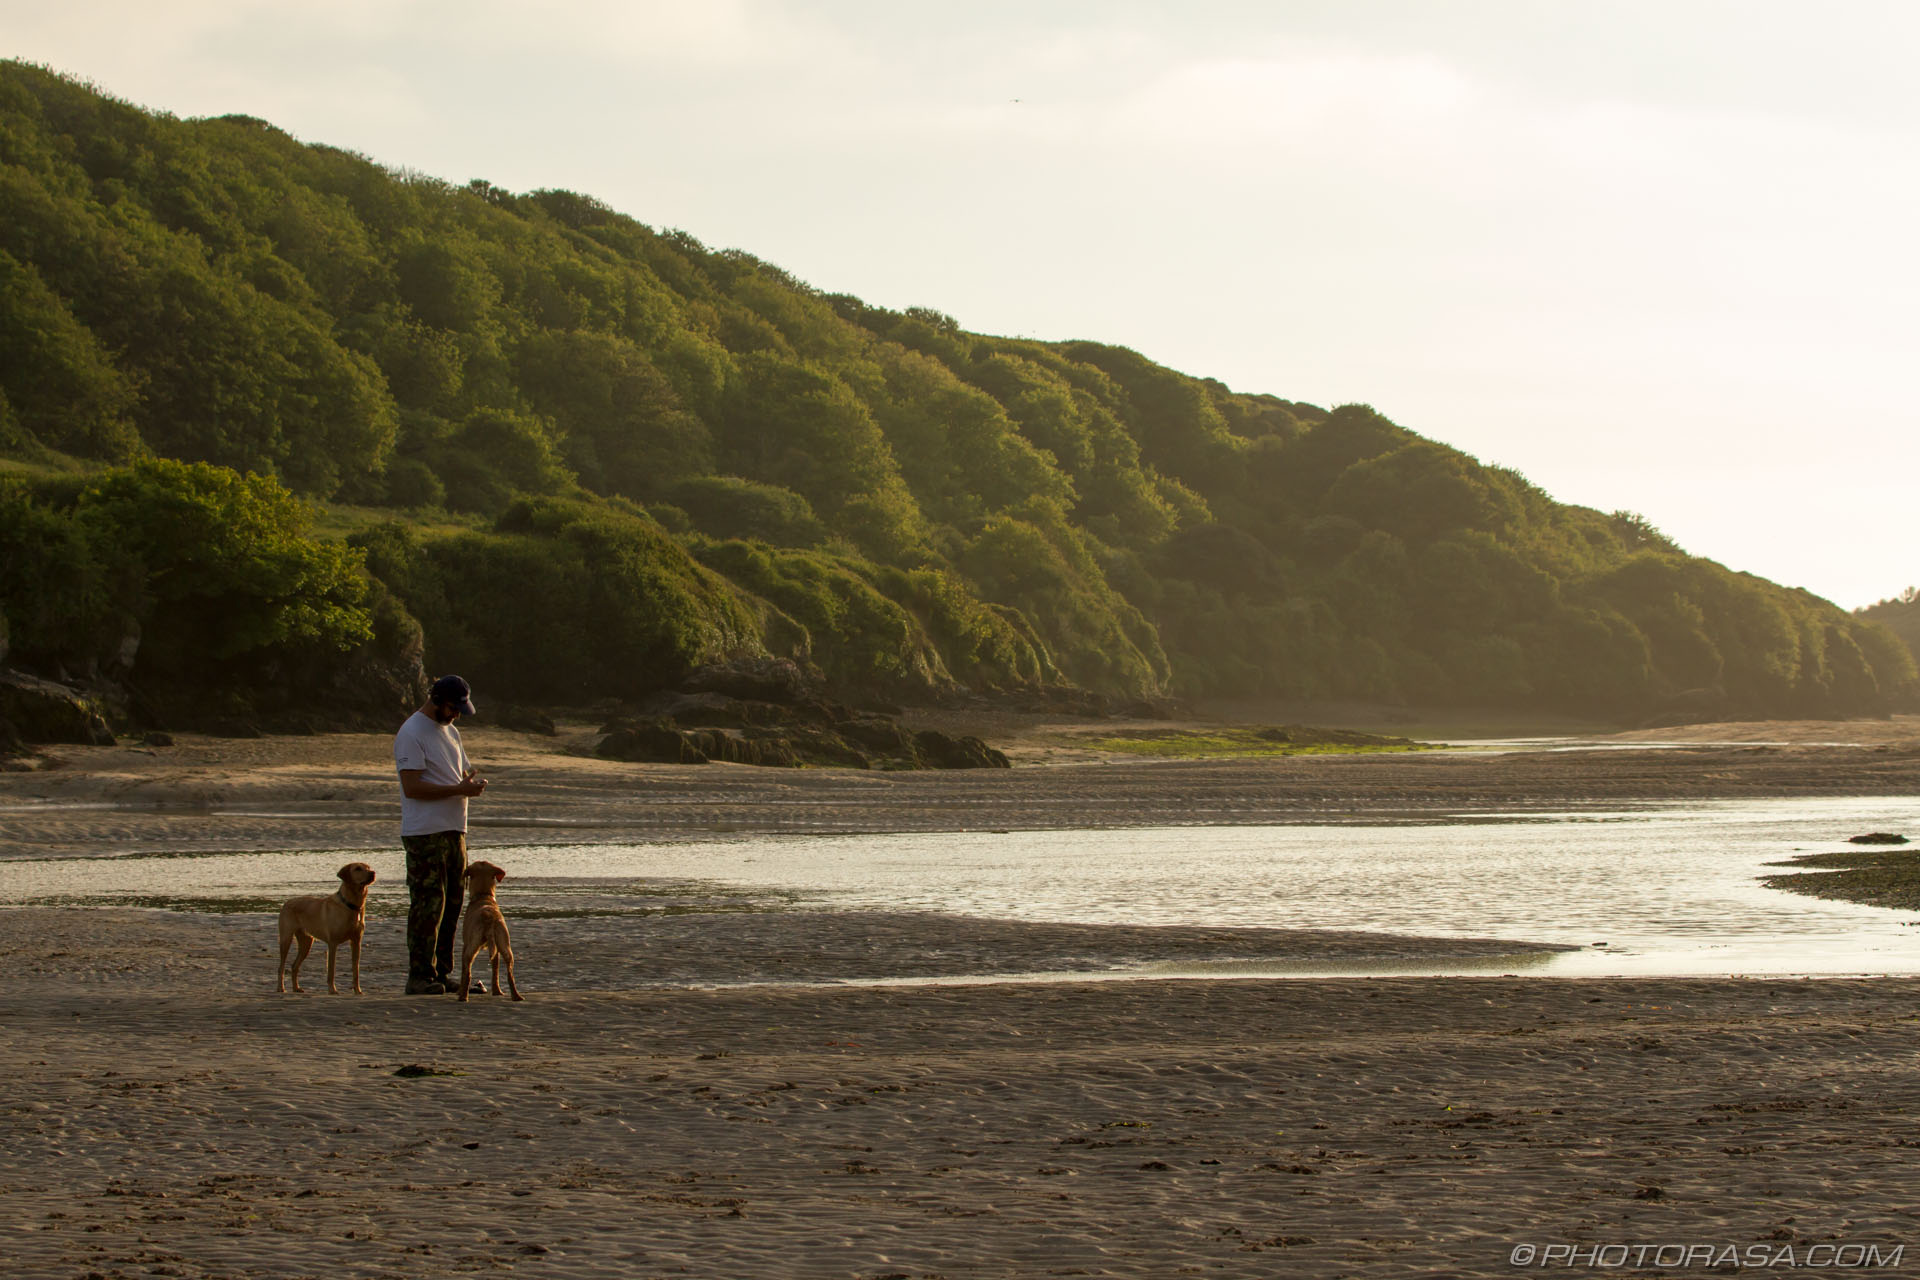 https://photorasa.com/newquay/two-dogs-wait-for-their-master/